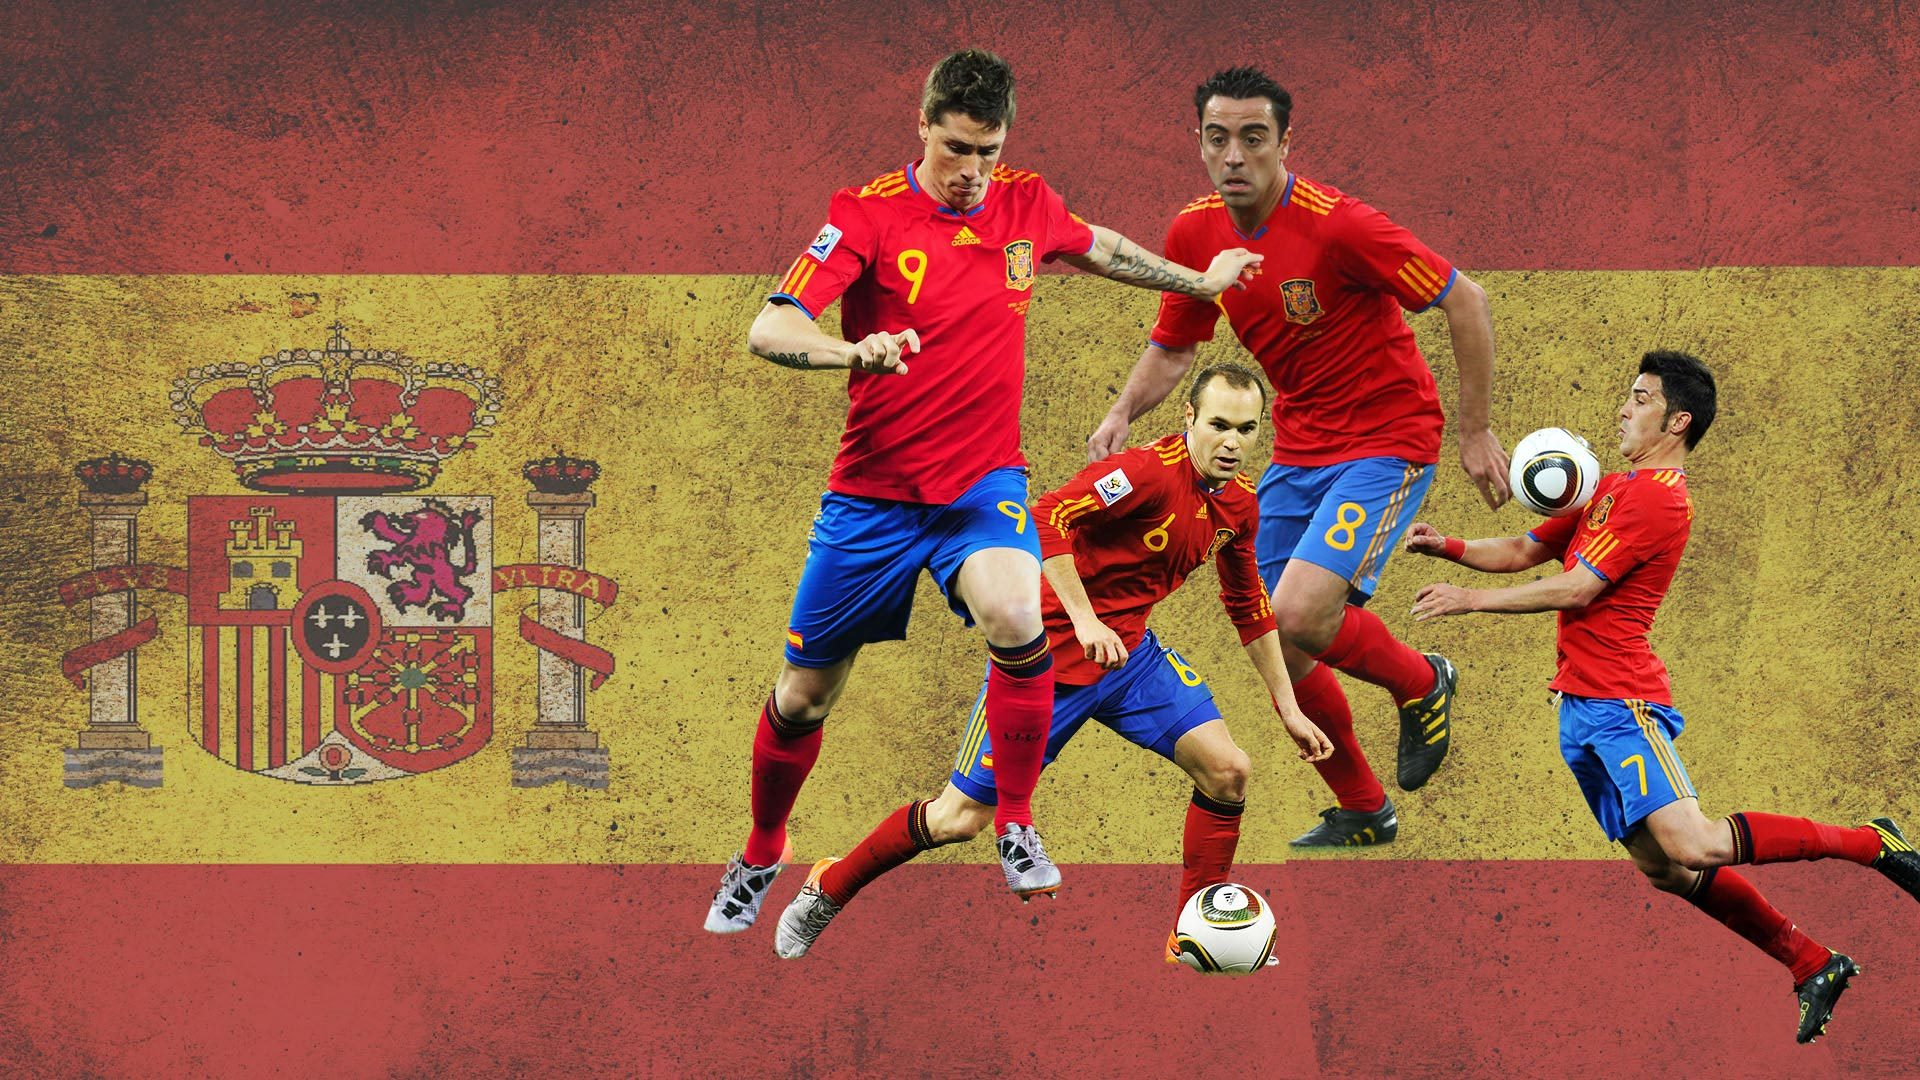 wallpaper.wiki Spain National Football Team And Flag Image 2 PIC WPC004167 Football Live Wallpapers HD